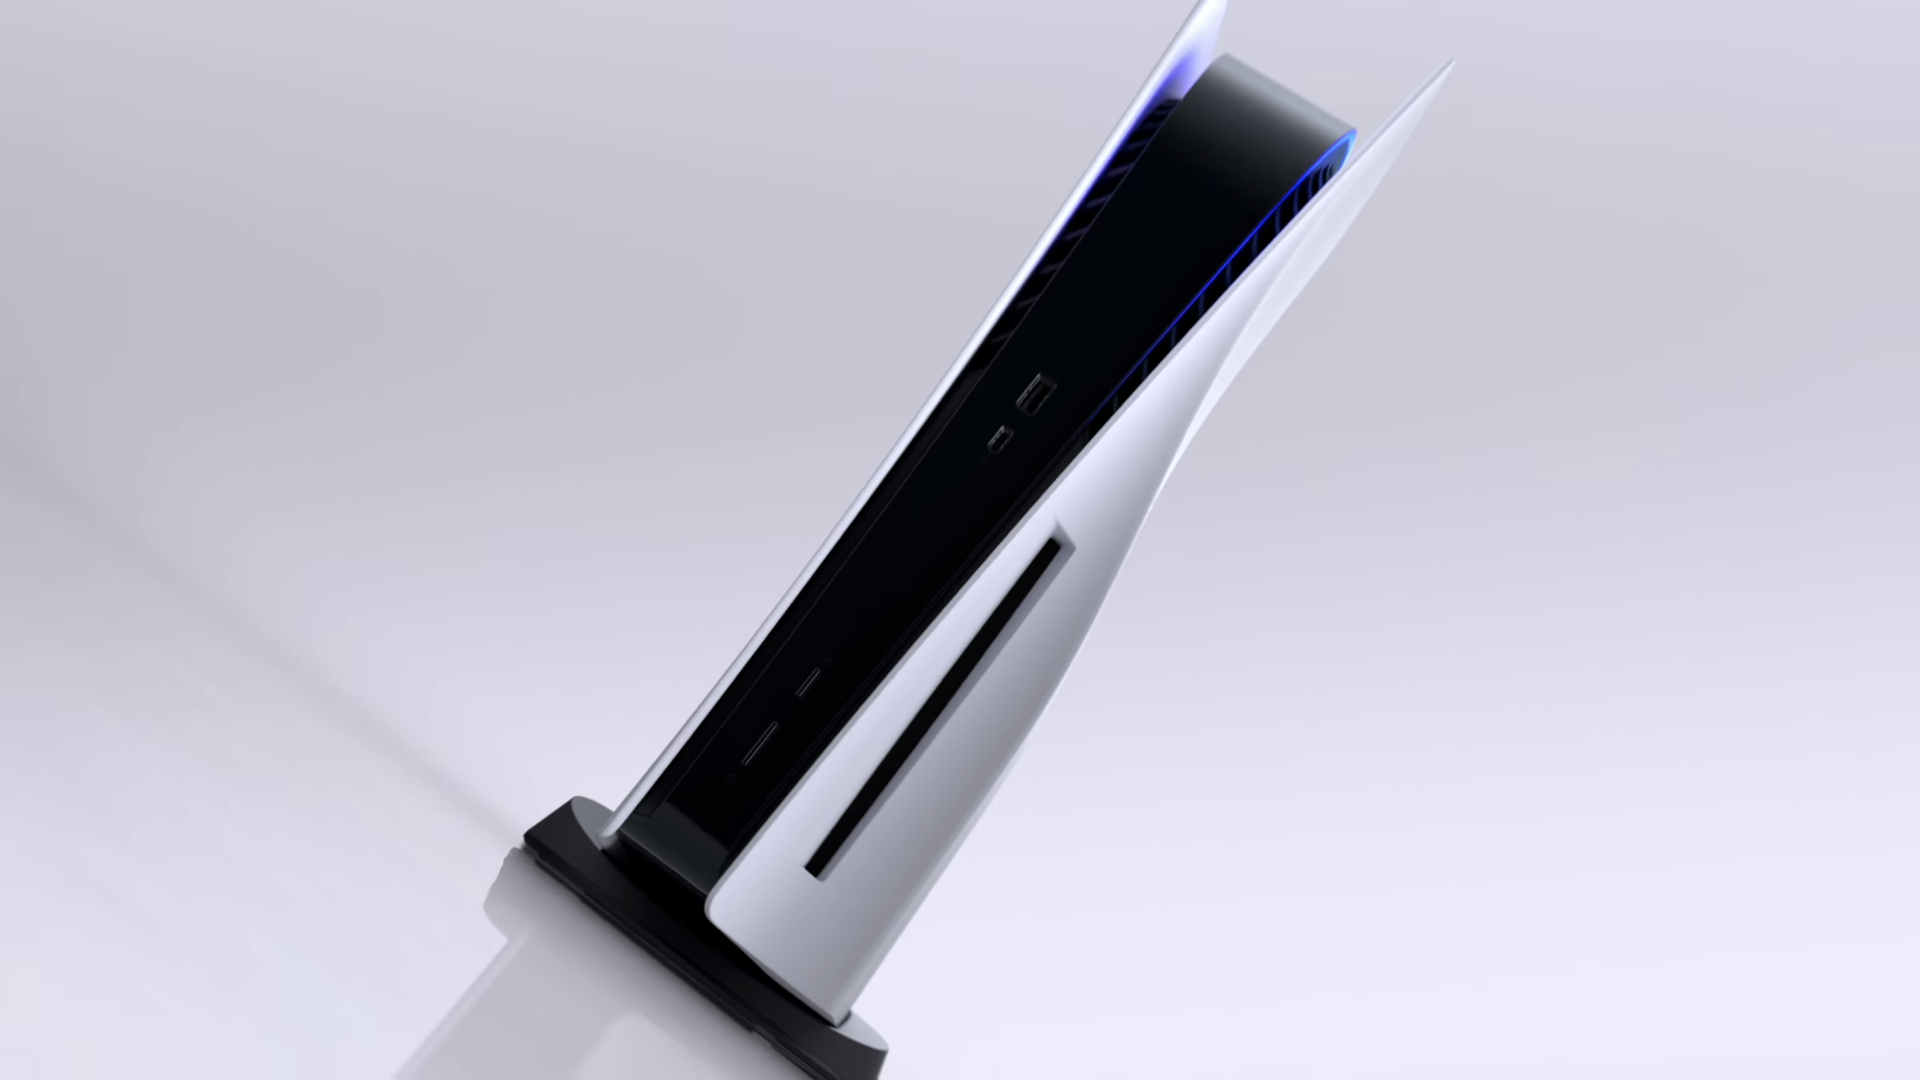 The PlayStation 5 console, tilted sideways, from its initial reveal video.